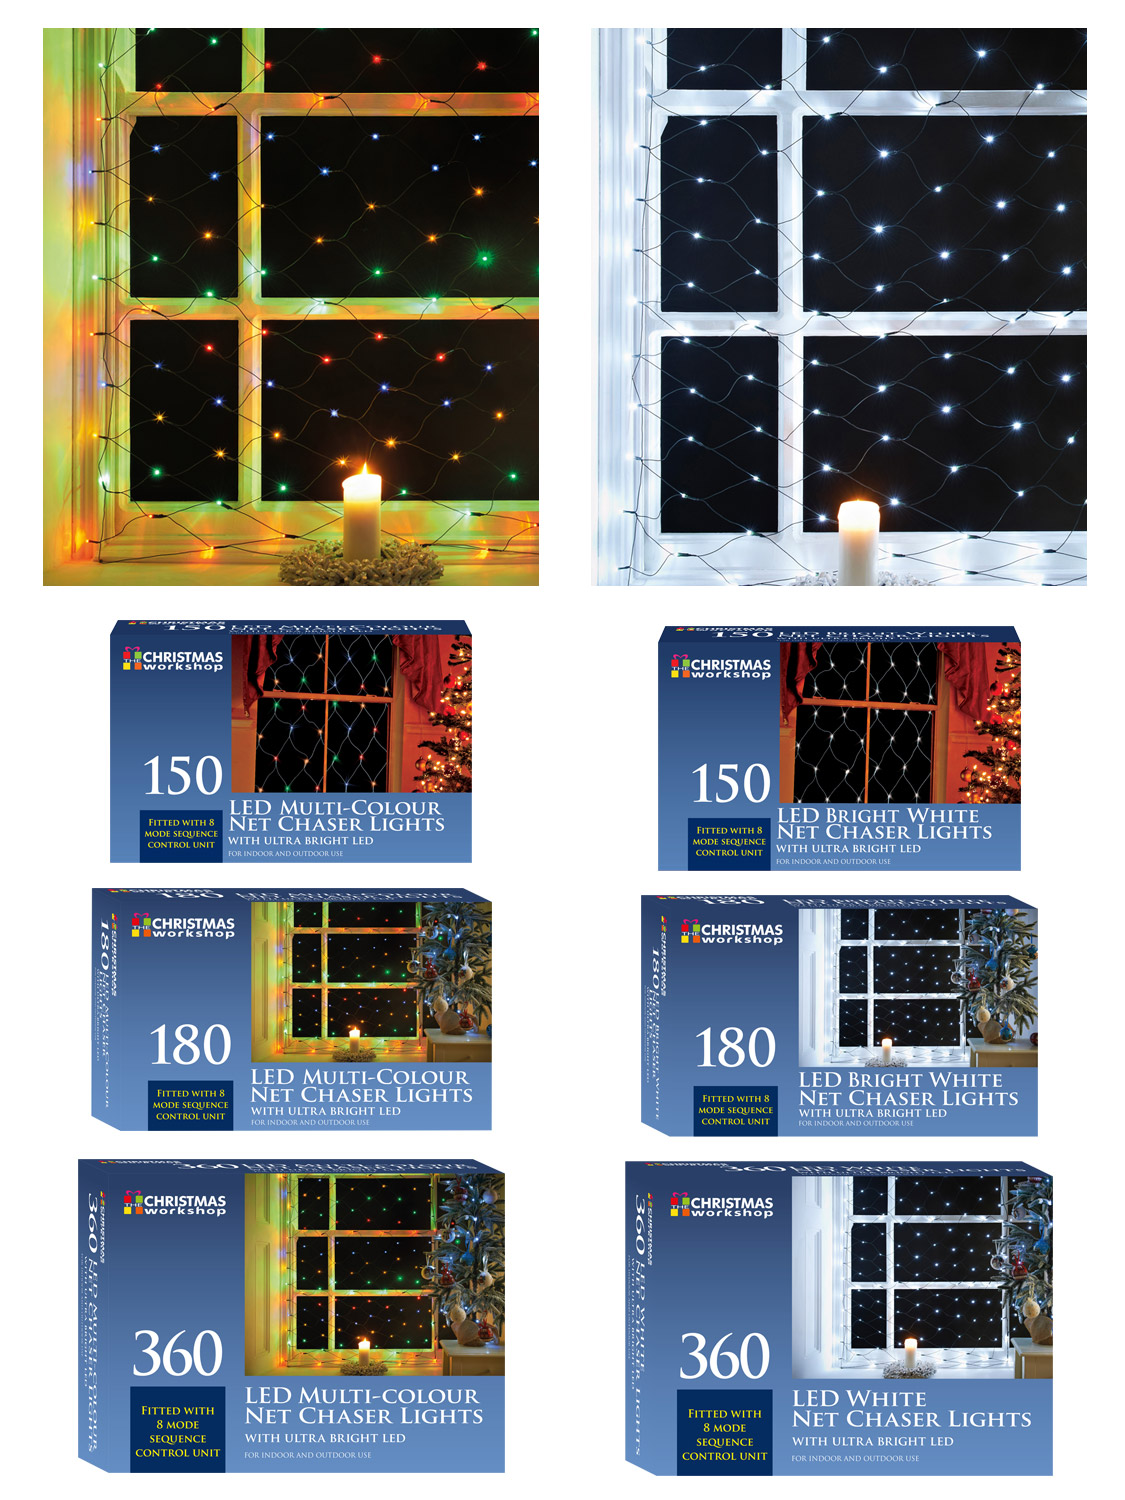 OUTDOOR 150 NET CHASER MODE BRIGHT LIGHT BULB CHRISTMAS WINDOW XMAS FOR INDOOR